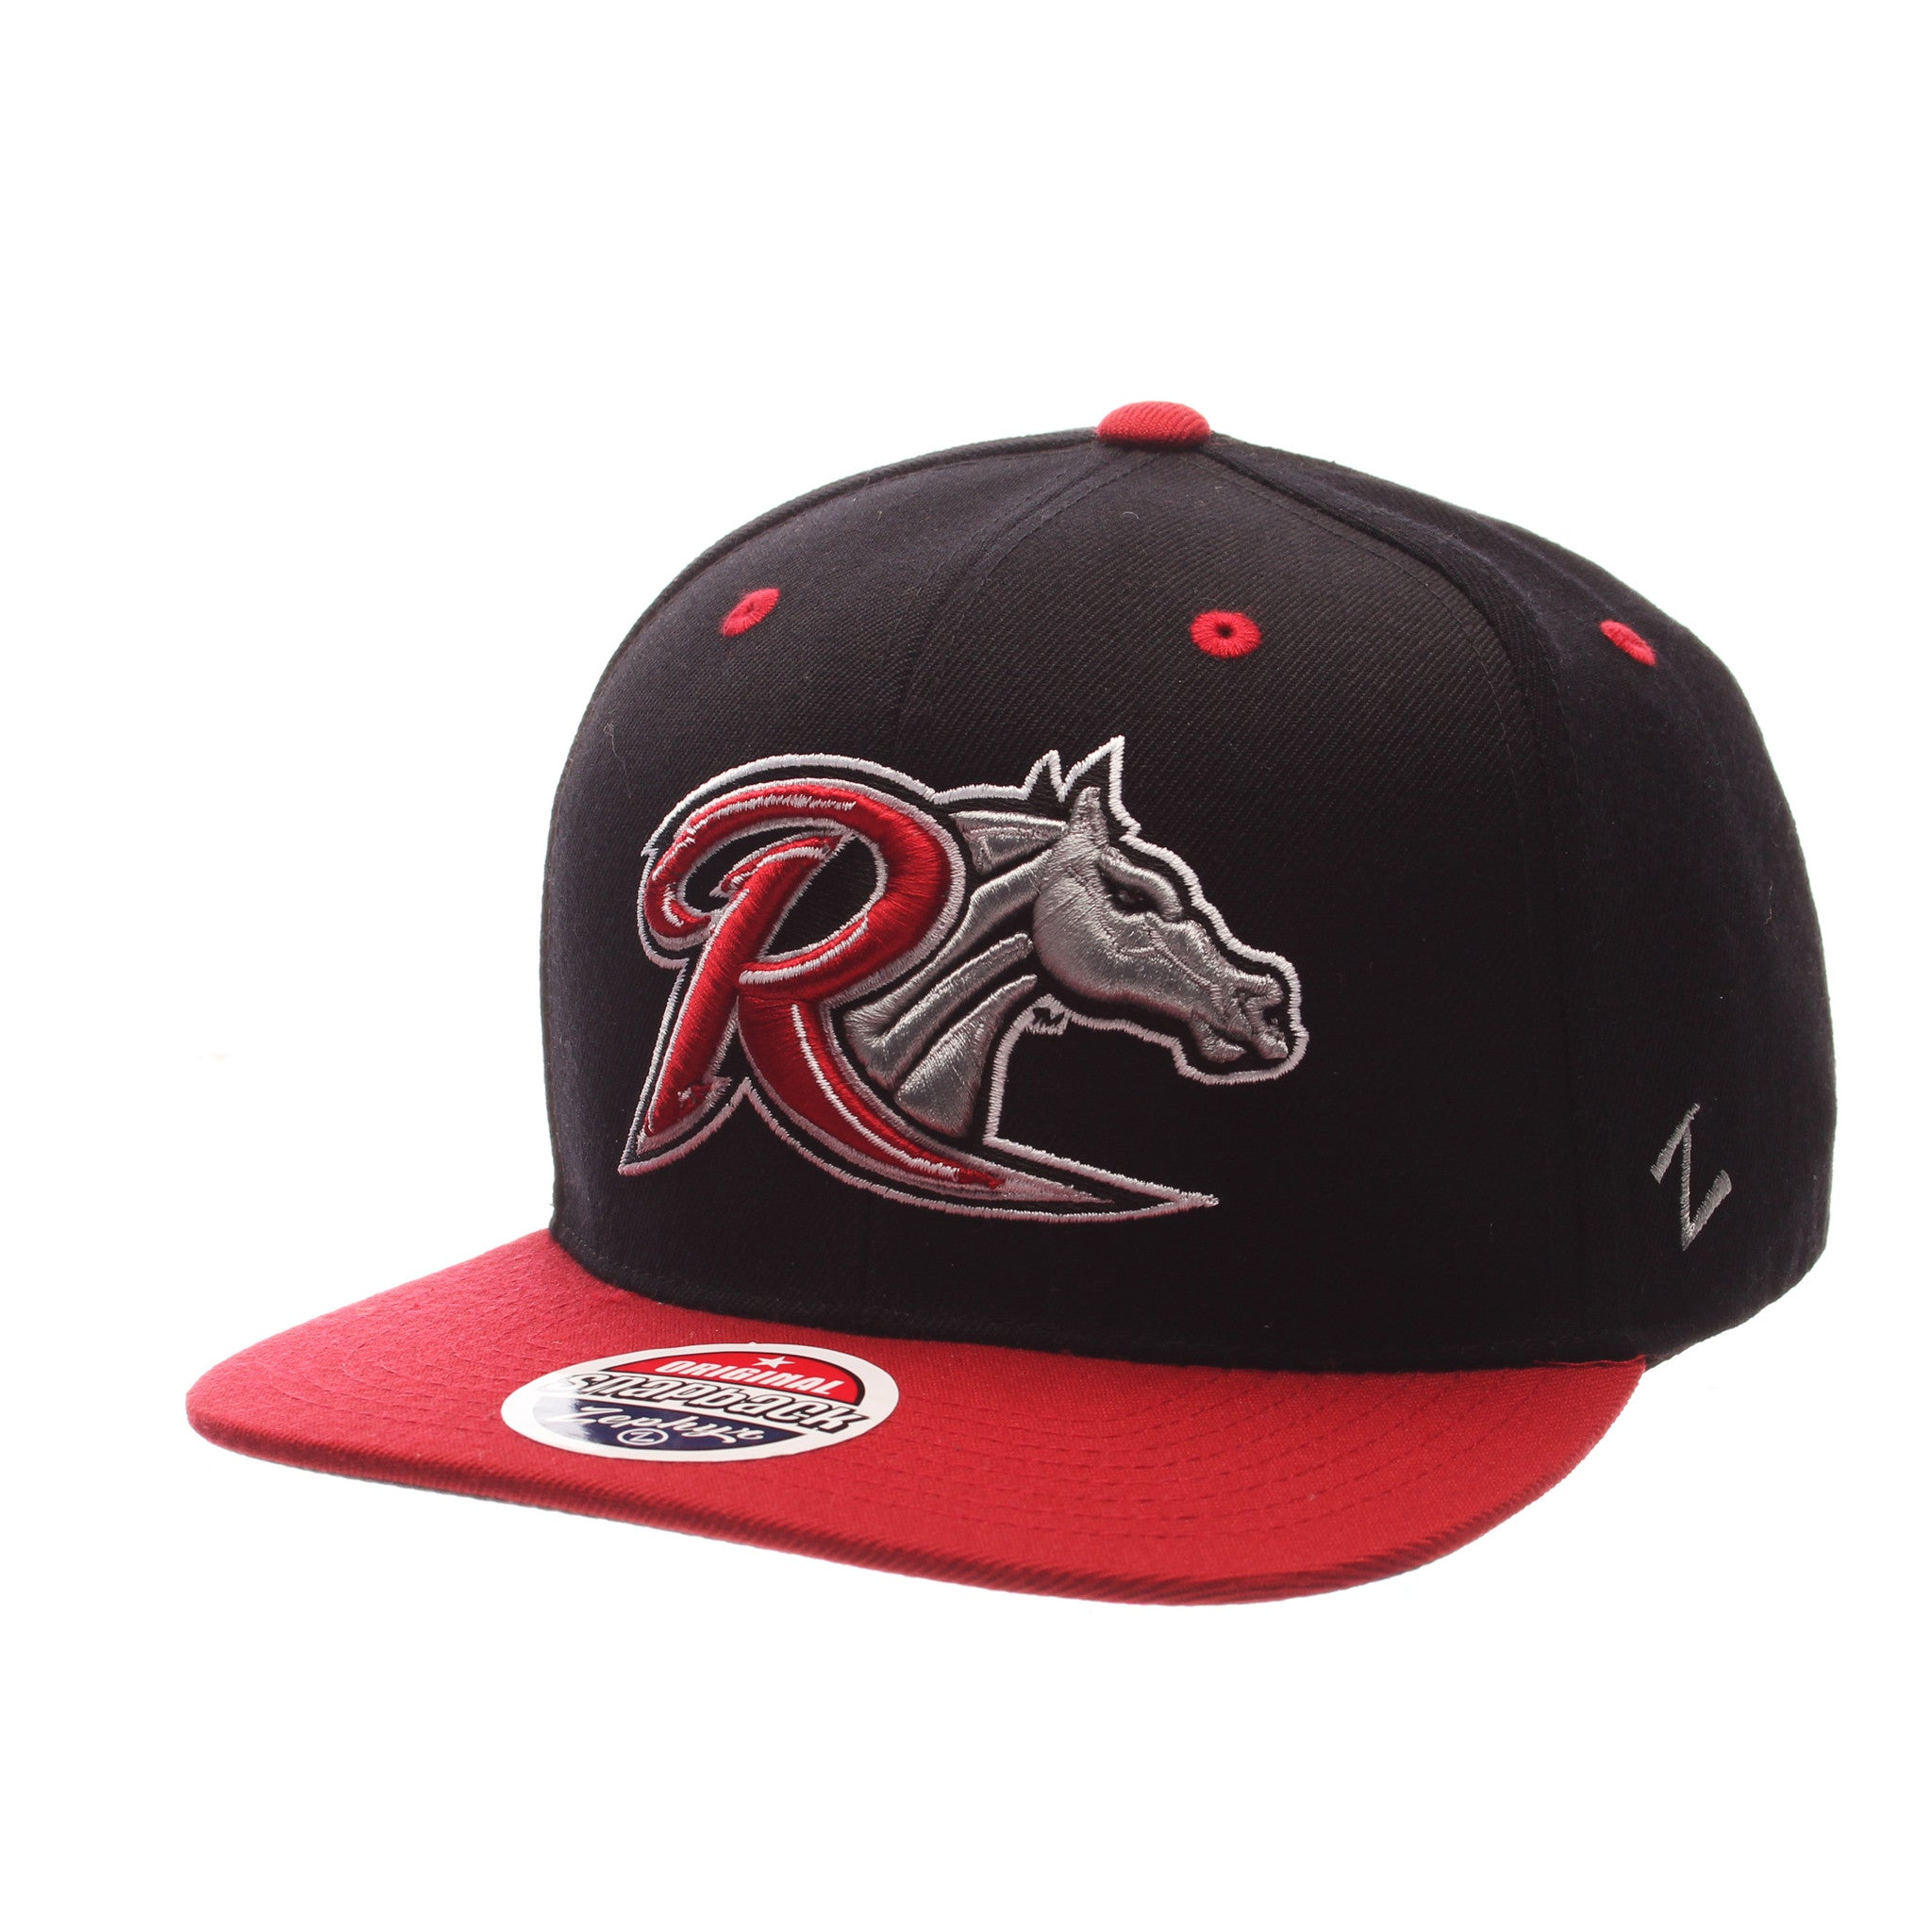 Rider University Z11 32/5 (High) (R W/HORSE HEAD) Black Zwool Adjustable hats by Zephyr